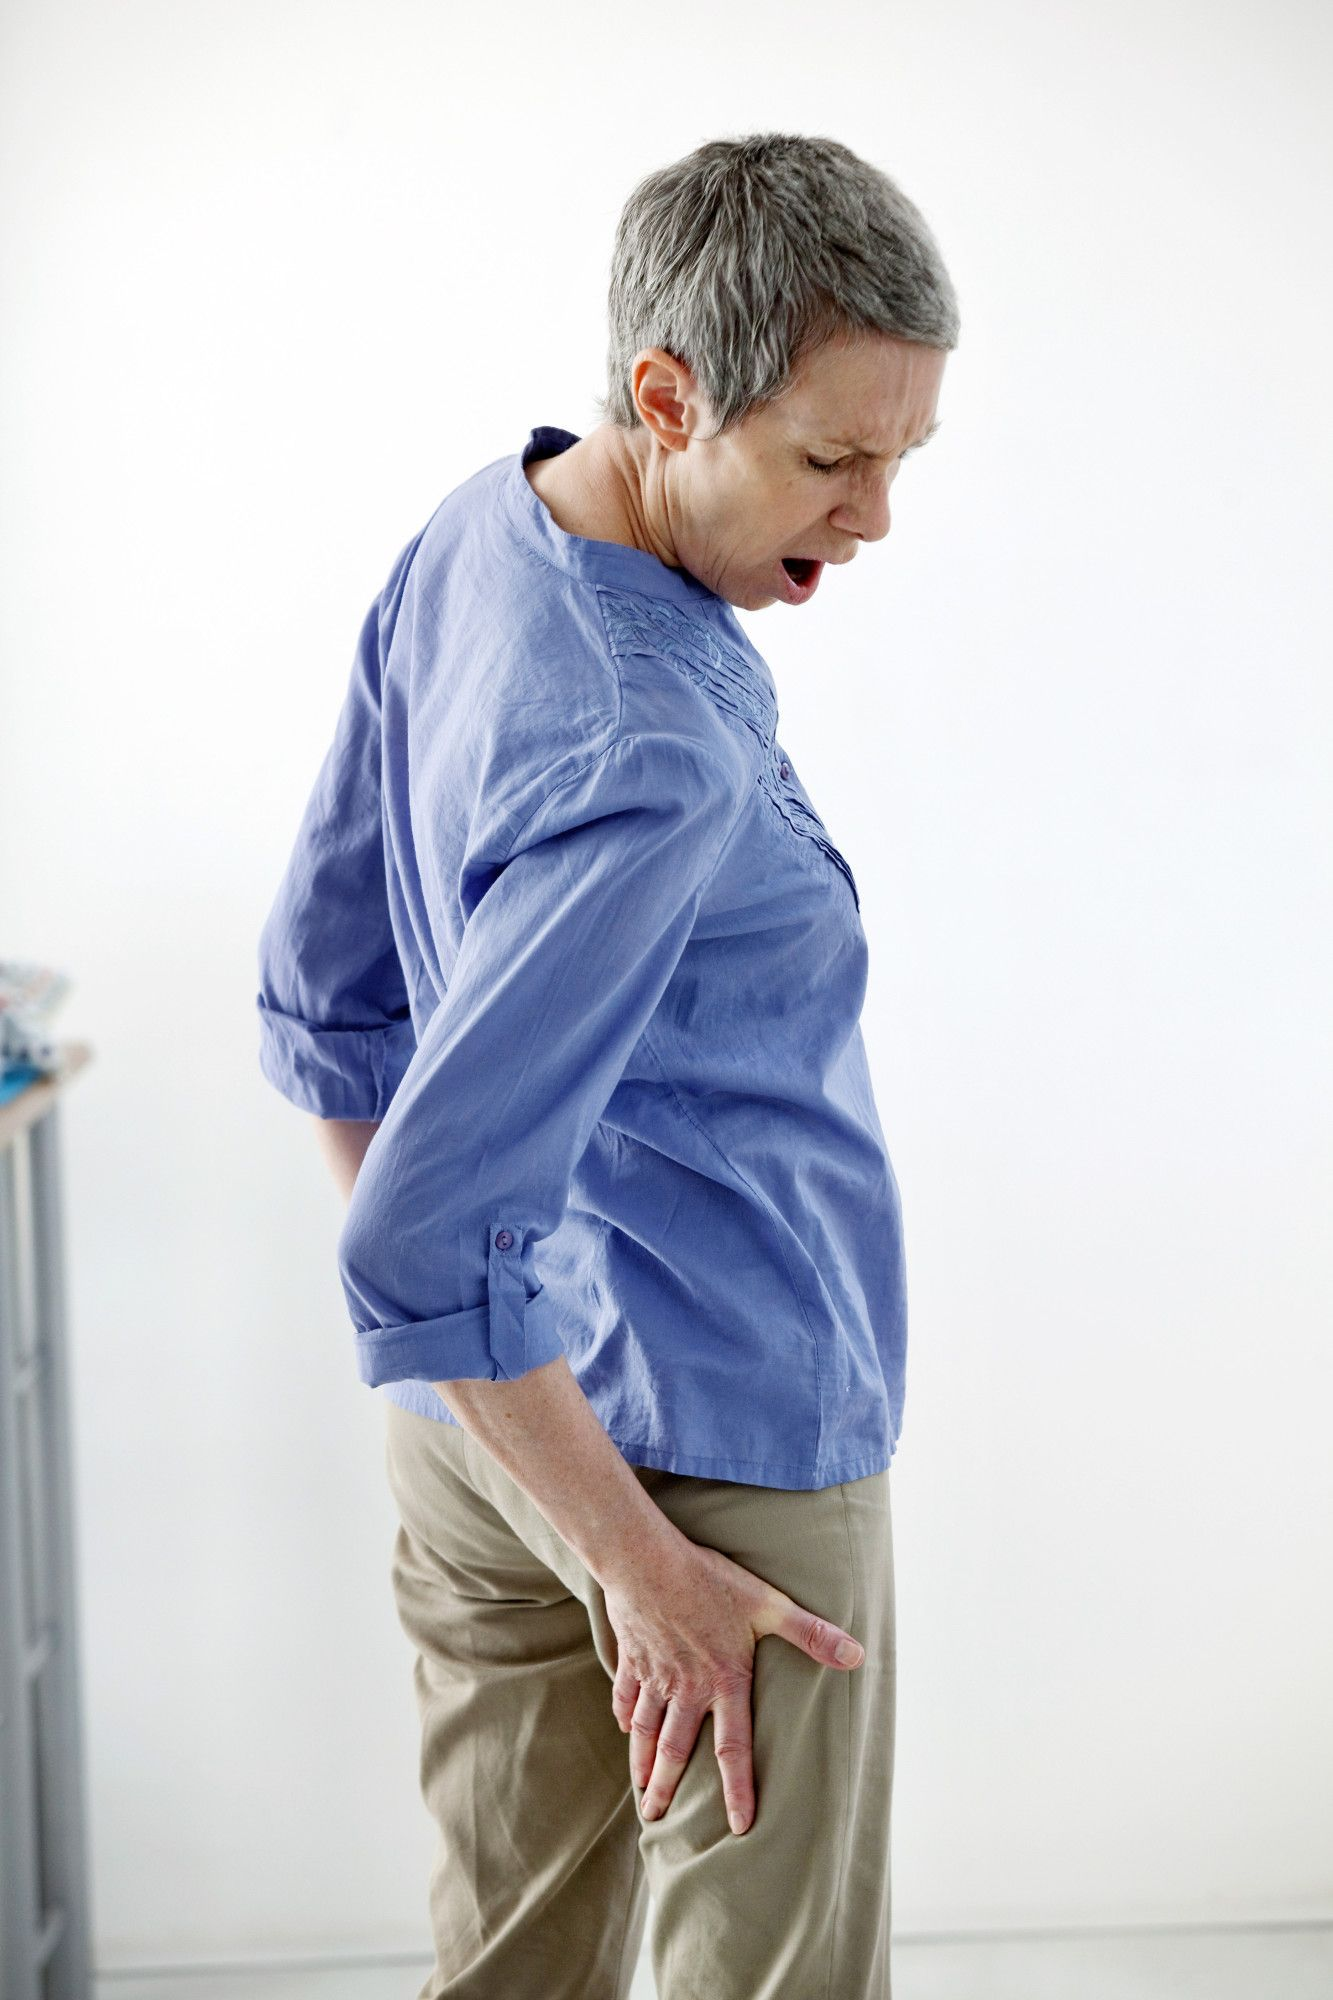 What Is Sciatica? Everything You Need to Know